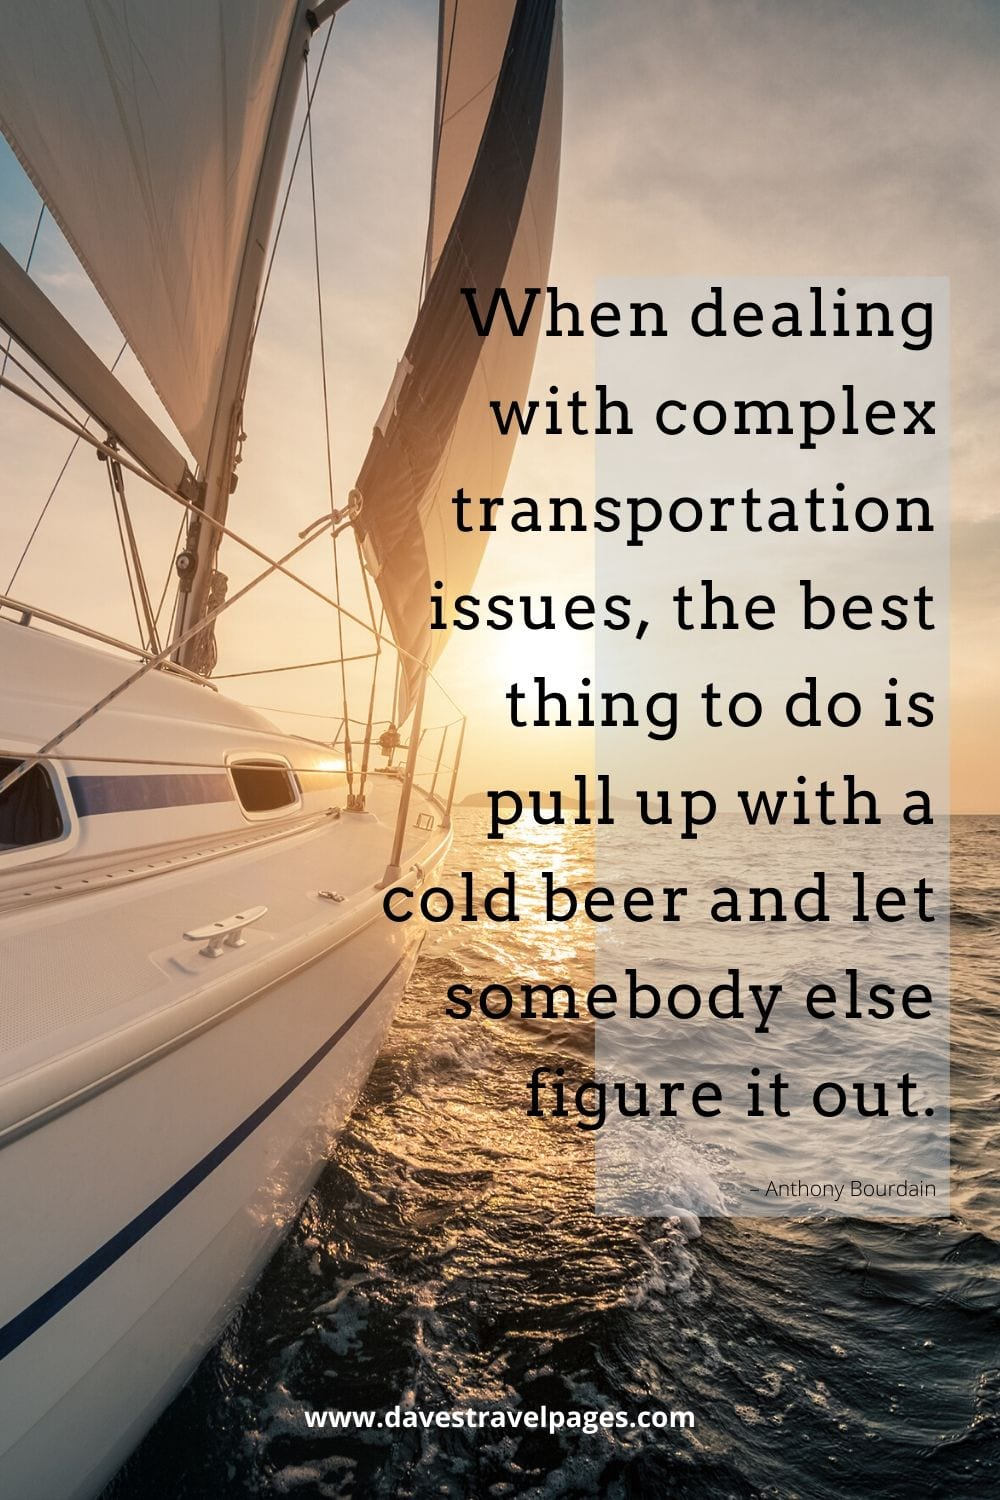 """""""When dealing with complex transportation issues, the best thing to do is pull up with a cold beer and let somebody else figure it out."""" – Funny Anthony Bourdain quote"""